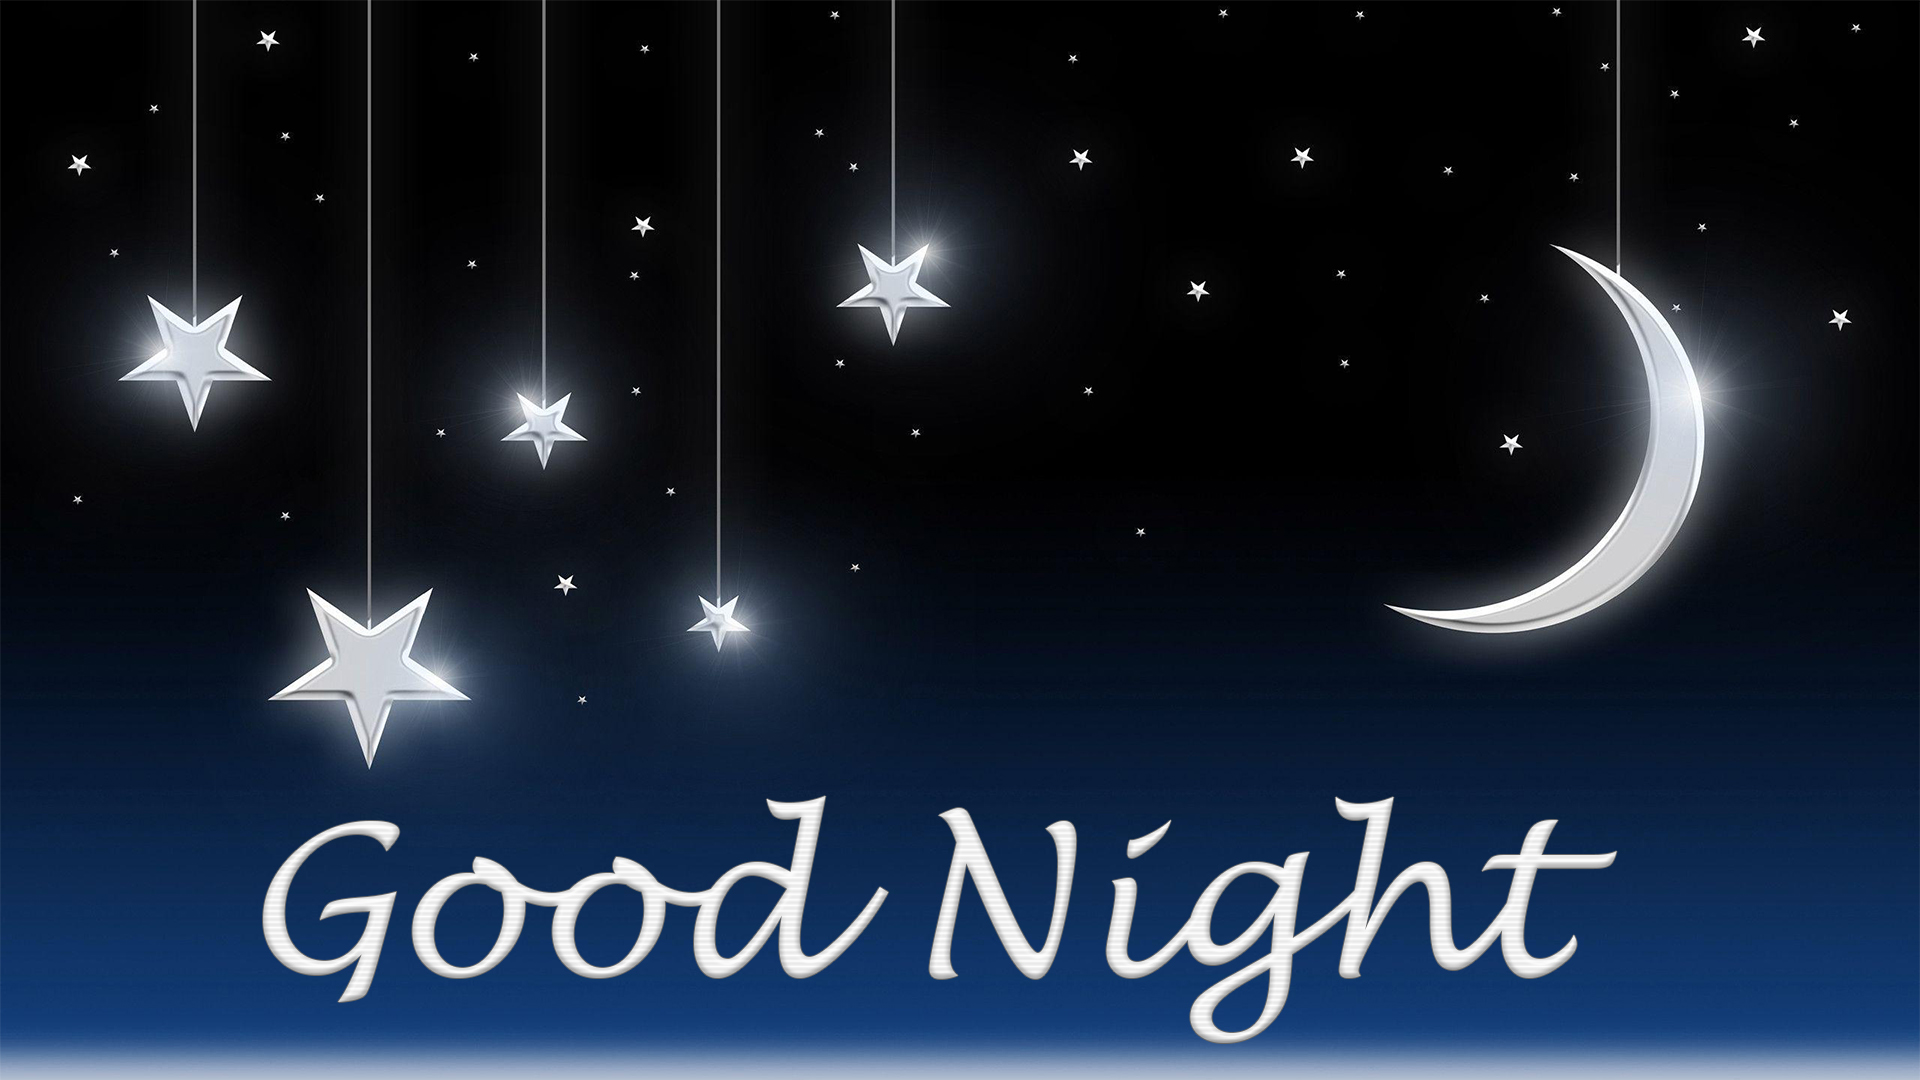 Sweet Good Night Images Hd Pictures Free Download